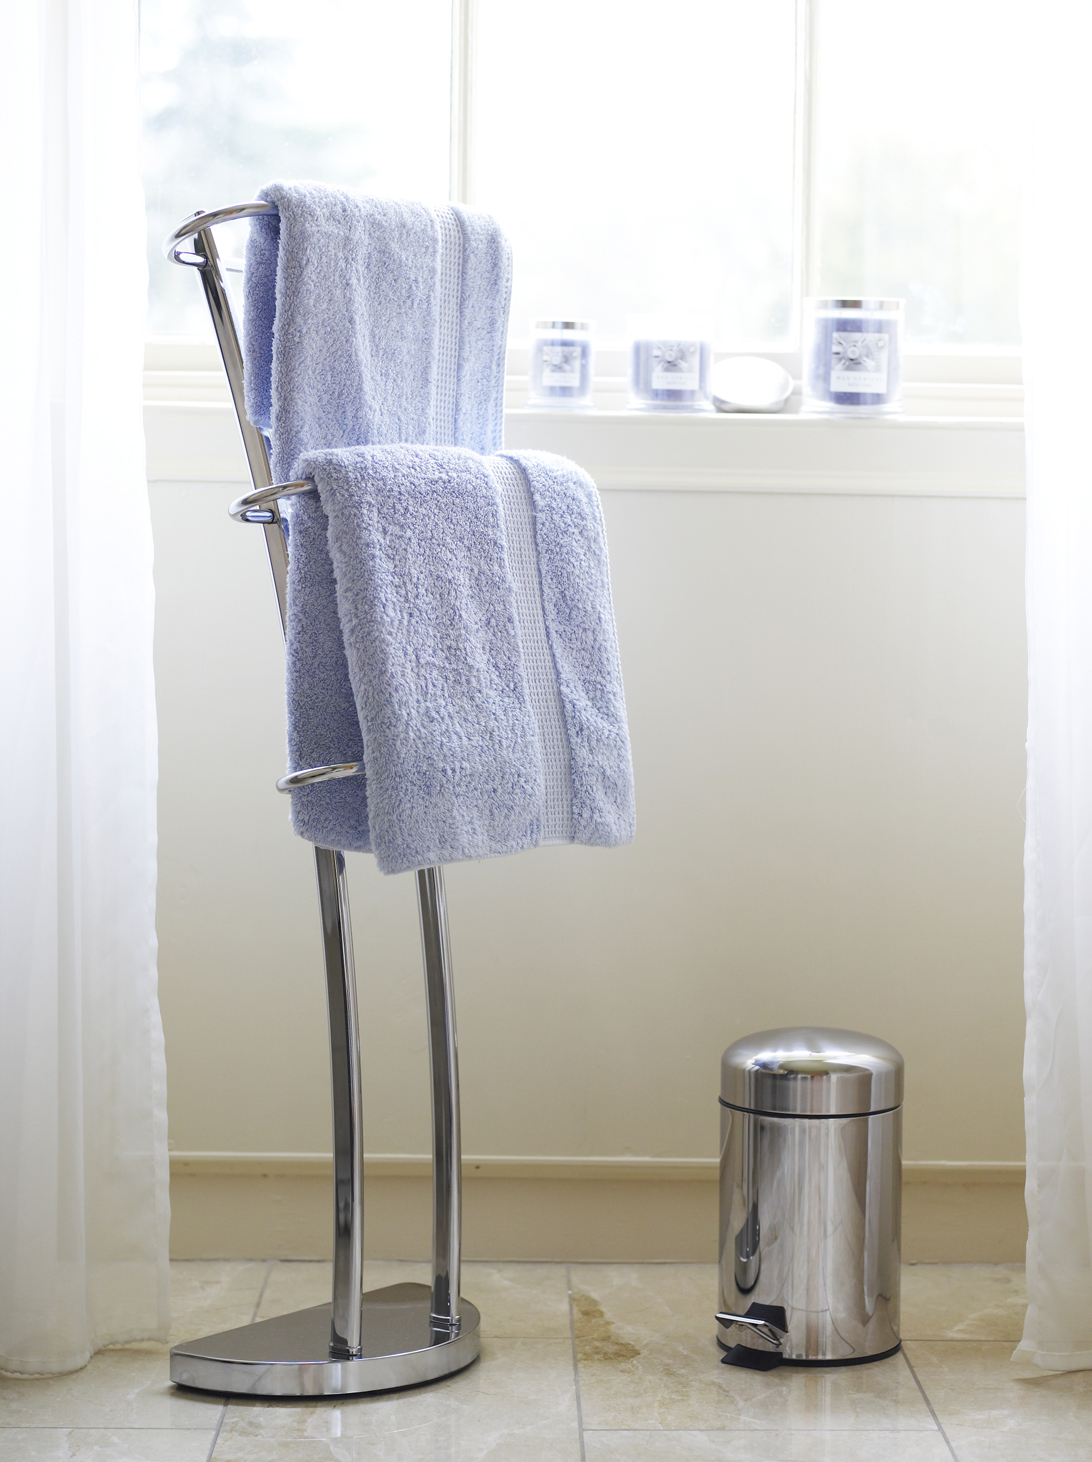 Egyptian cotton towels, Stainless Steel Bathroom Bin, Chrome Bathroom Towel Rail